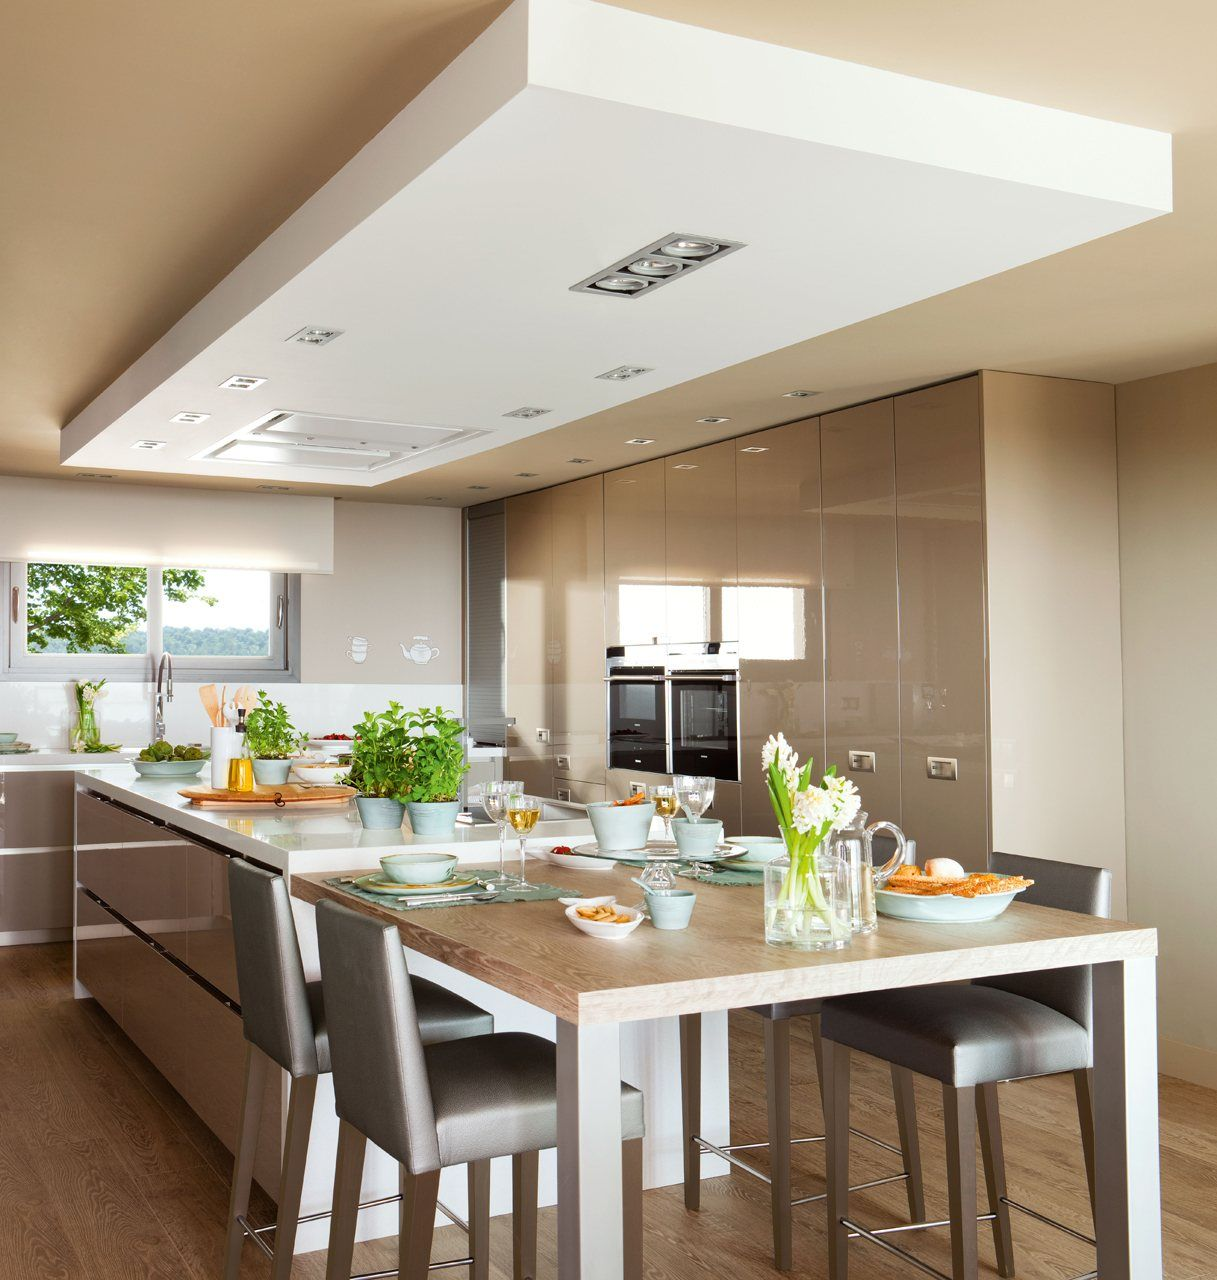 Cocinar con vistas | Kitchens, Modern kitchen tables and Ceiling